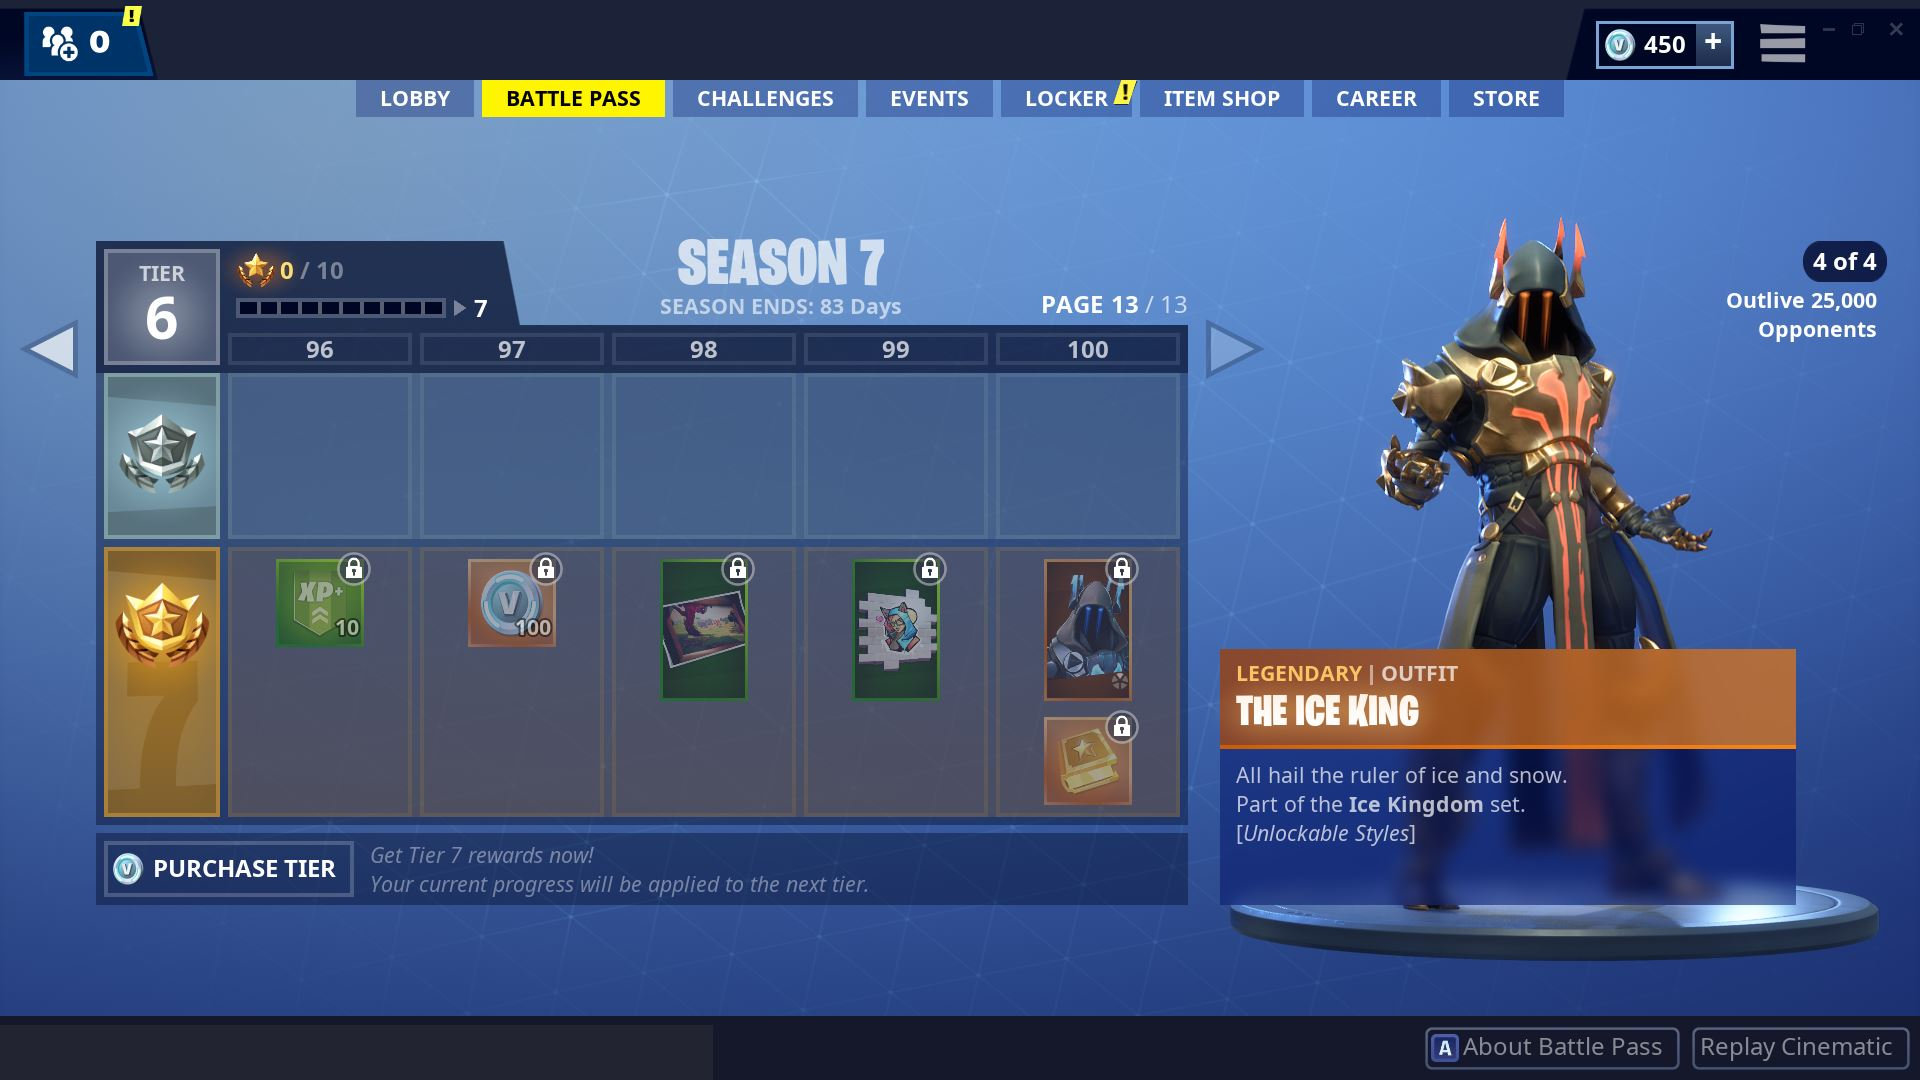 Fortnite Season 7 Battle Pass Page 13